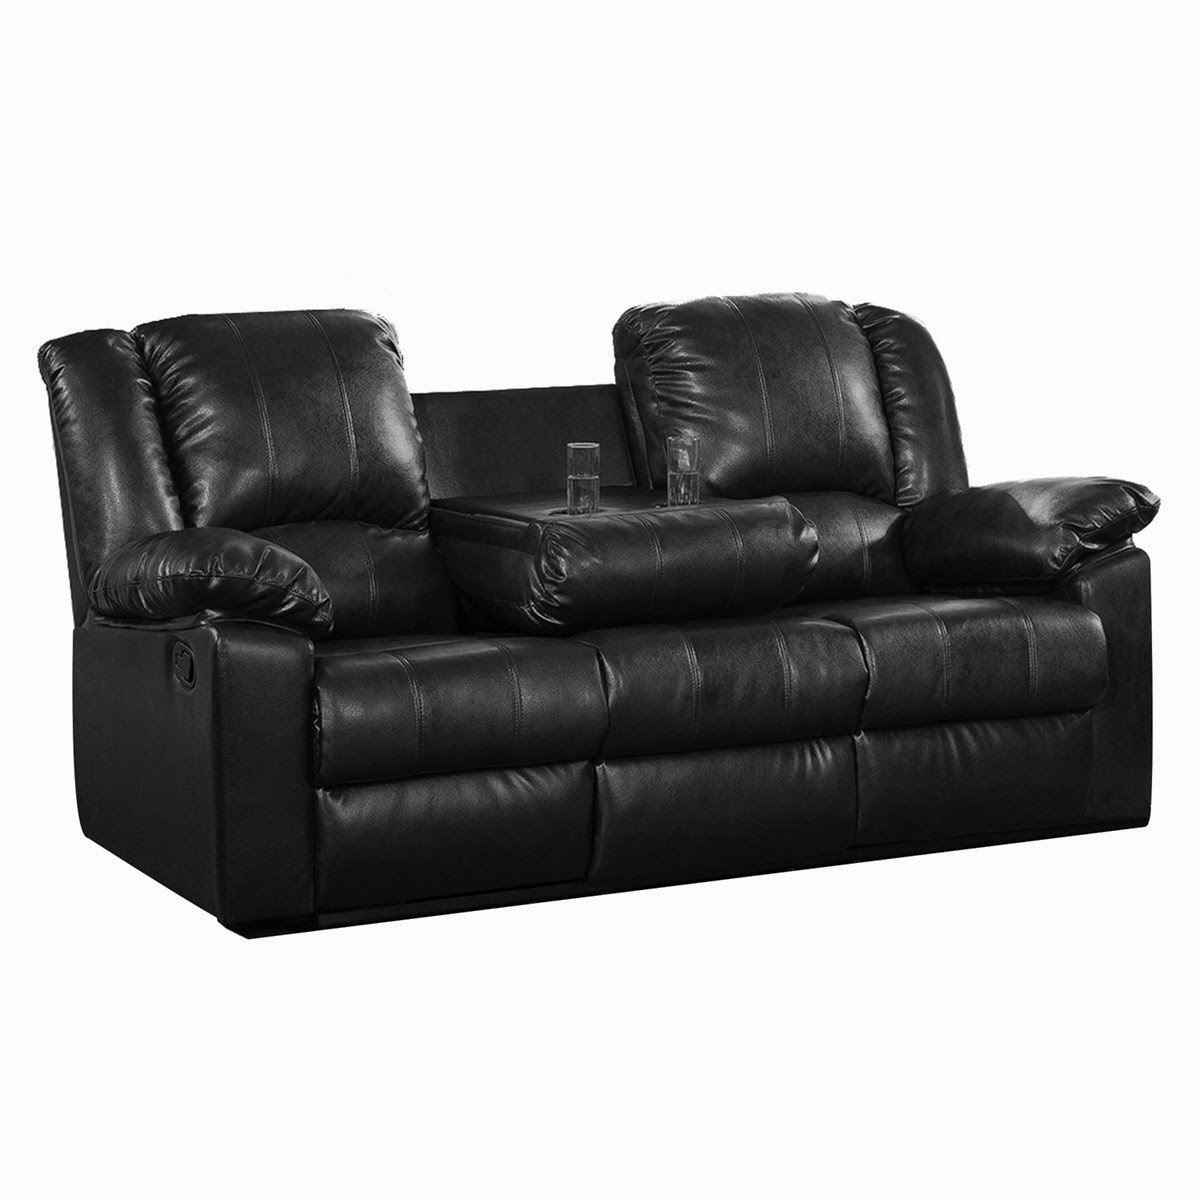 Cheap Recliner Sofas For Sale Triple Reclining Sofa Fabric: Sofa Recliner Sale: Recliner Sofa Bed Singapore